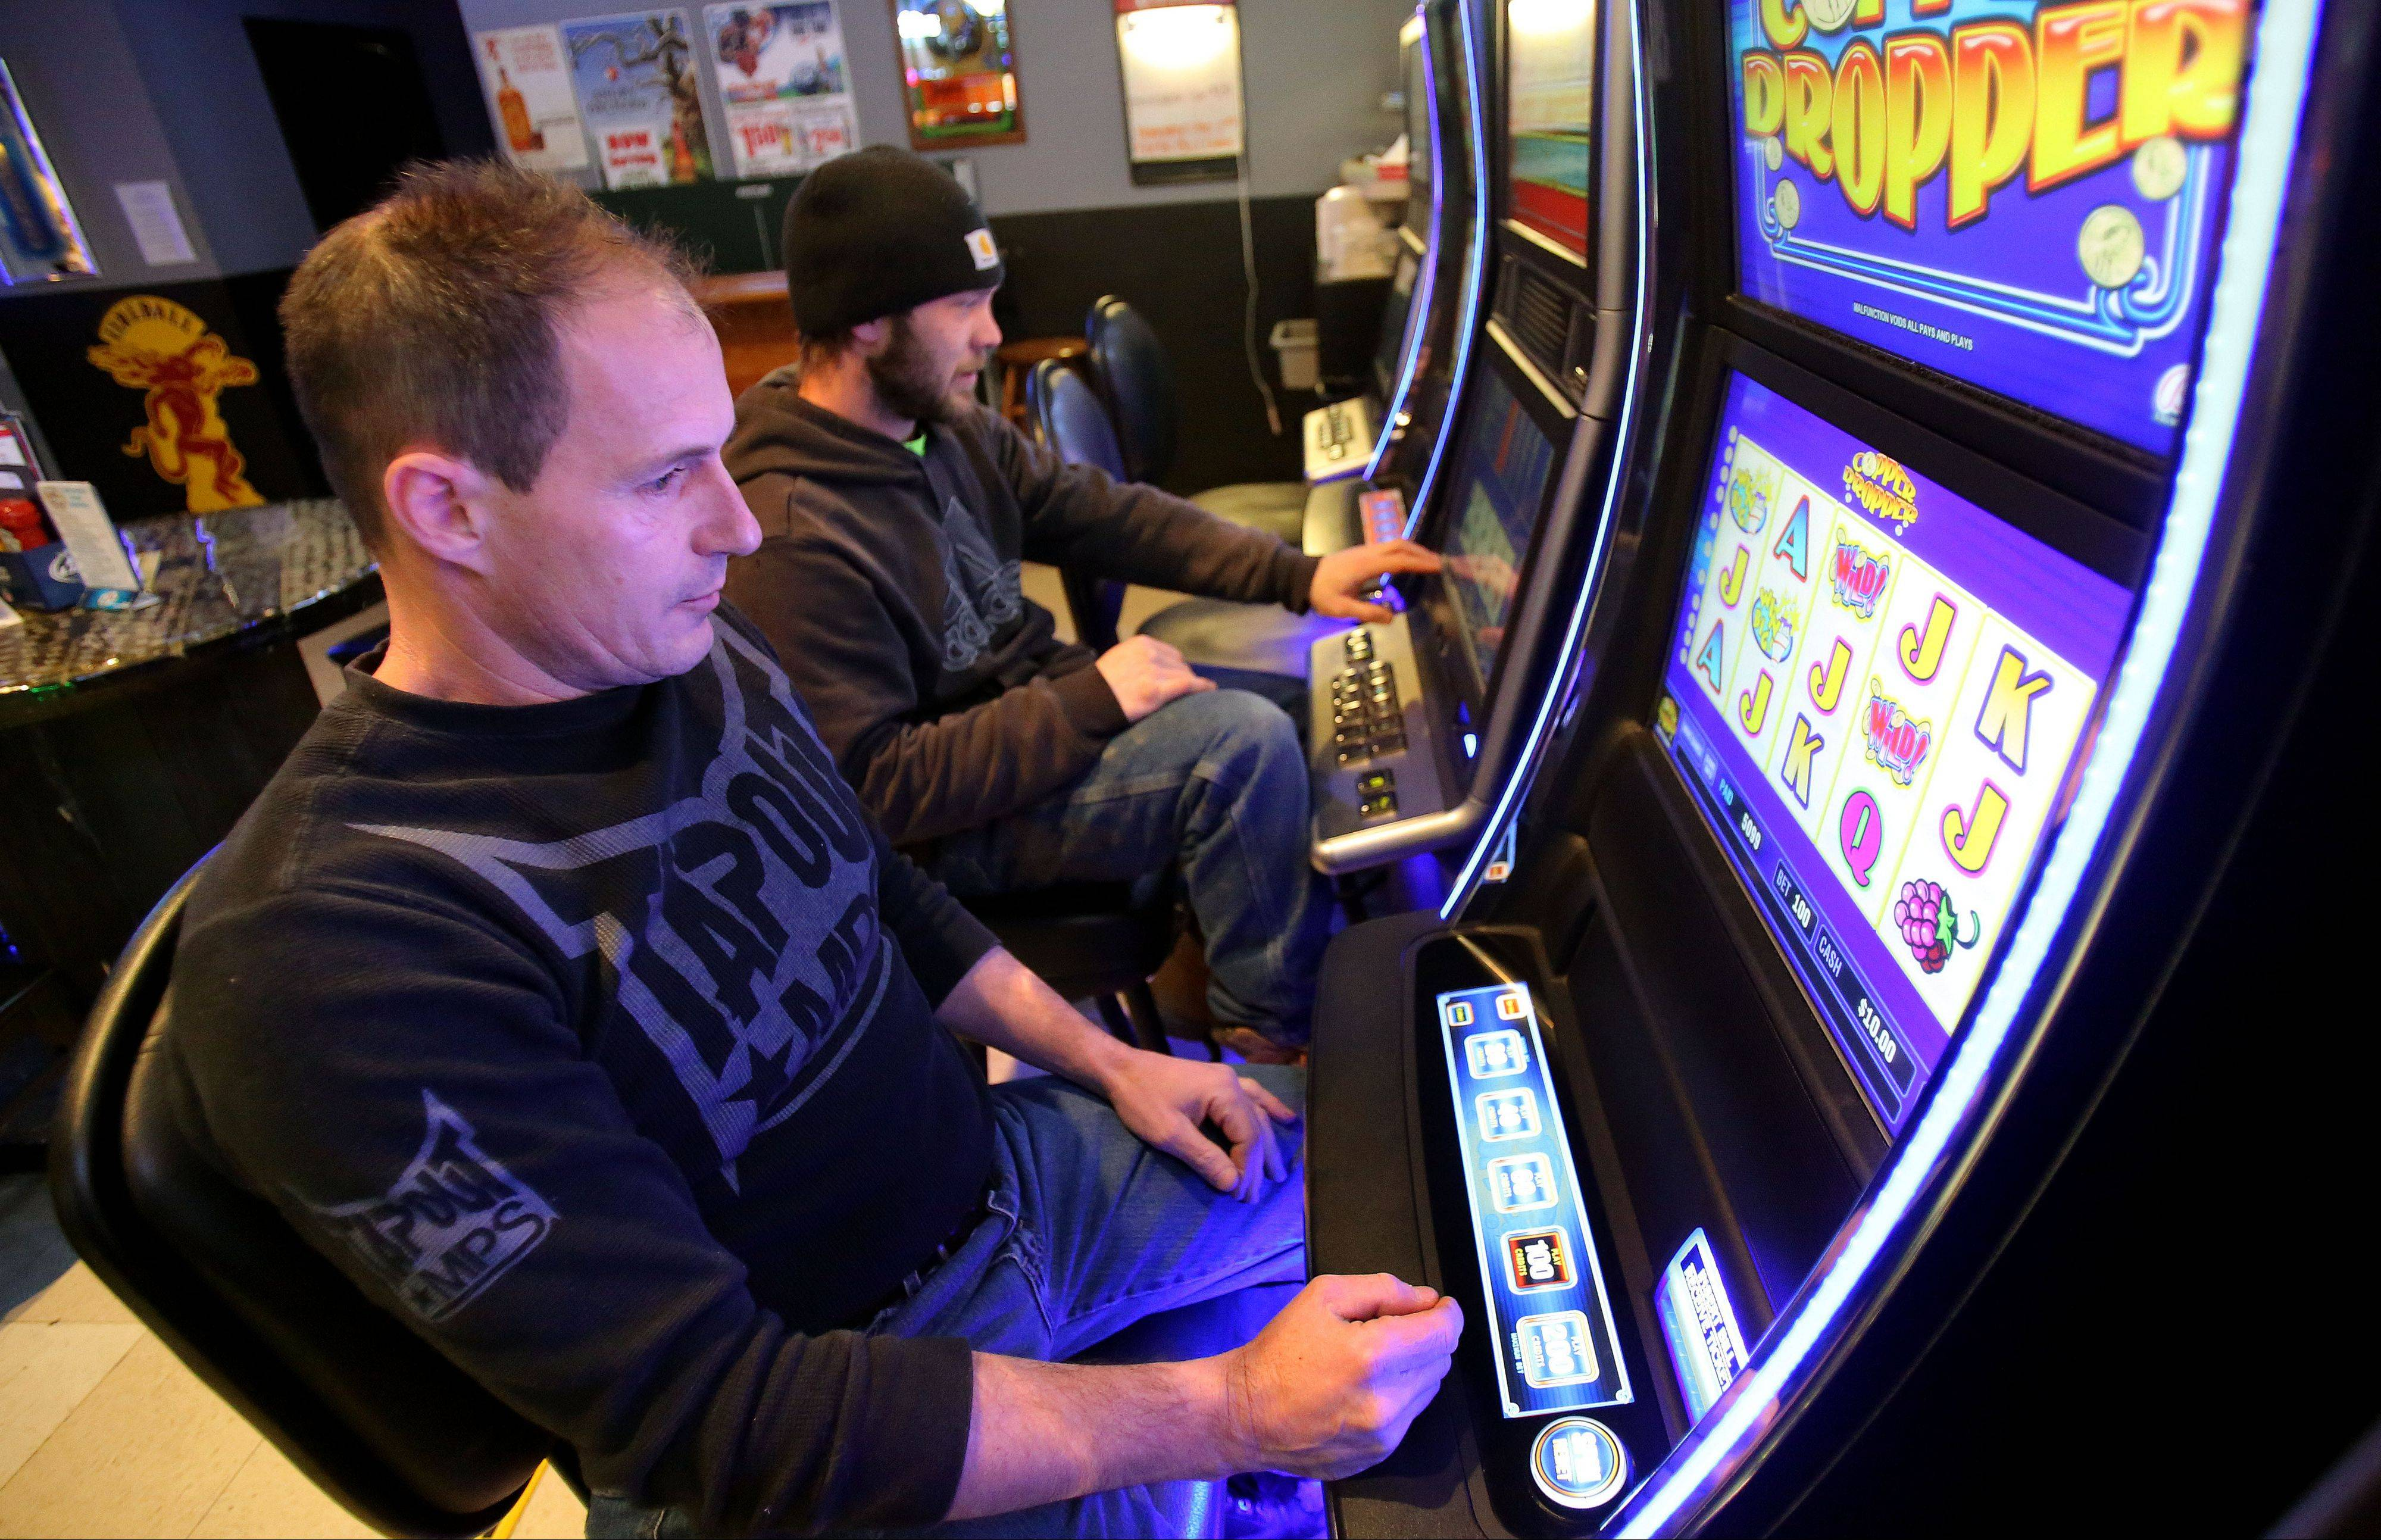 Mike Mitlevic, left, of Fox Lake and Rob Jones of Long Lake, play video gambling games at J's Sports Bar in Fox Lake. Village officials said the first year of video gambling generated more than $93,000 for the village.